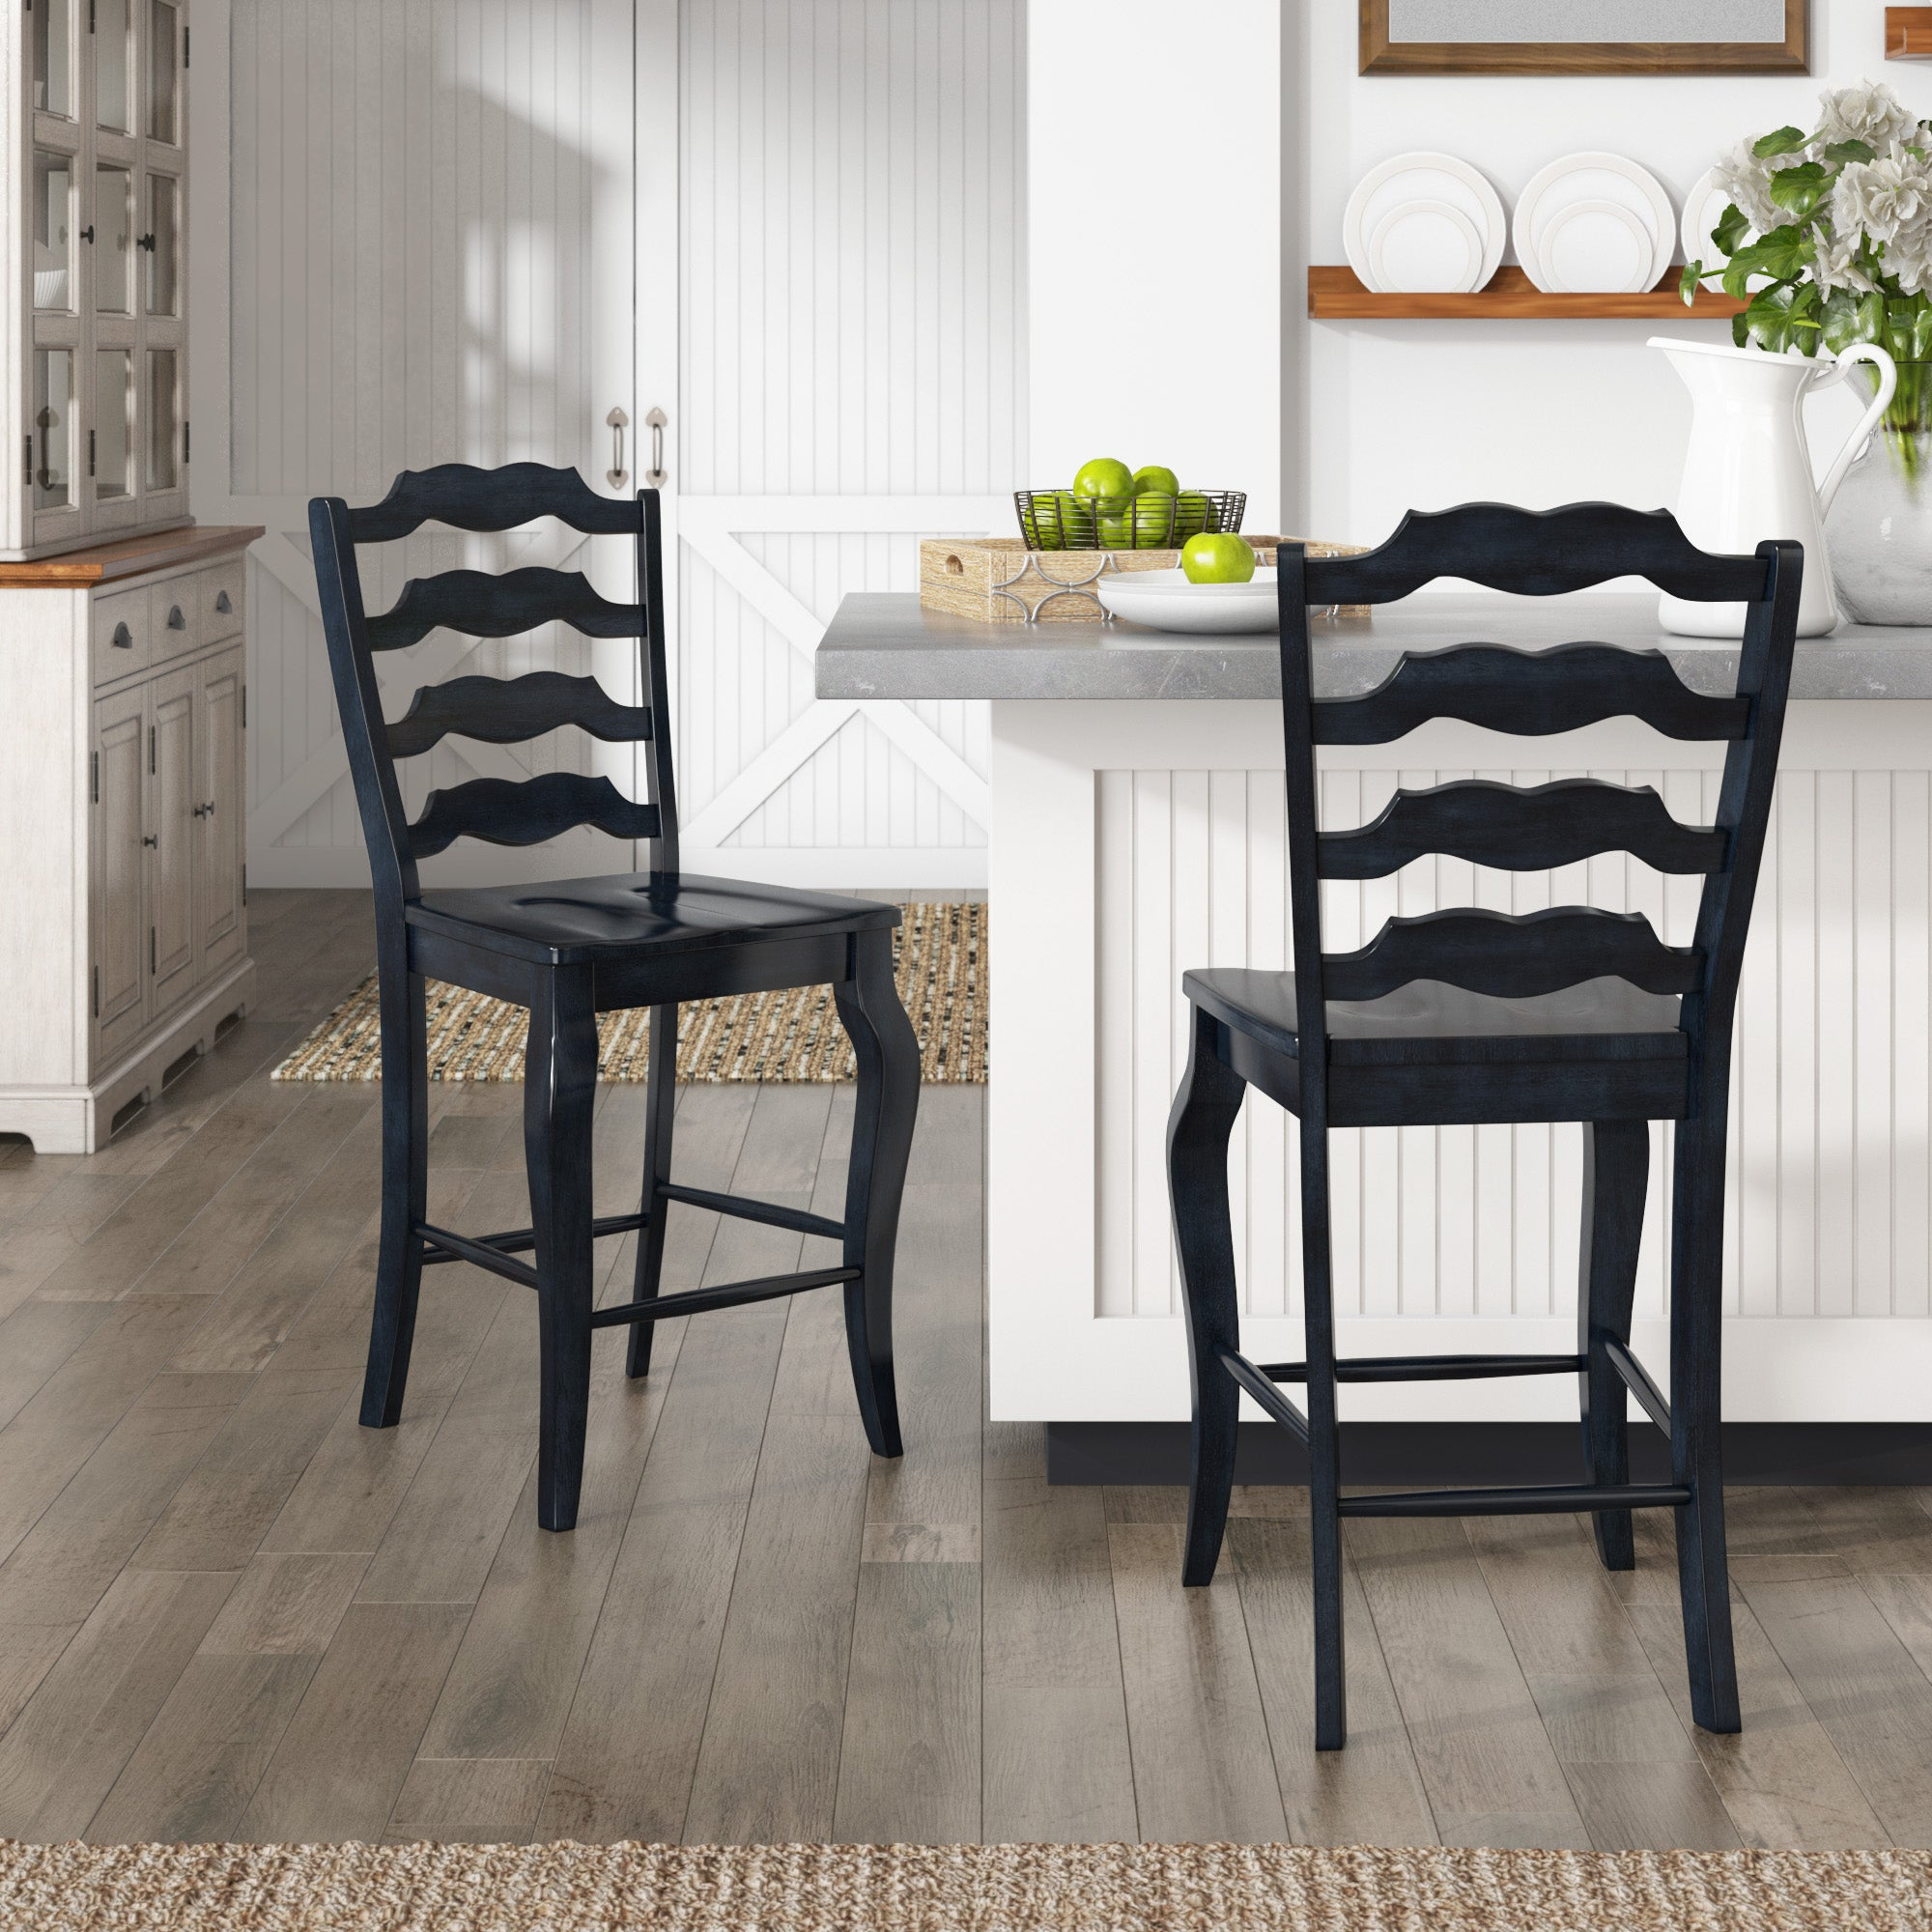 French Ladder Back Wood Counter Height Chair (Set of 2) - Antique Dark Denim Blue